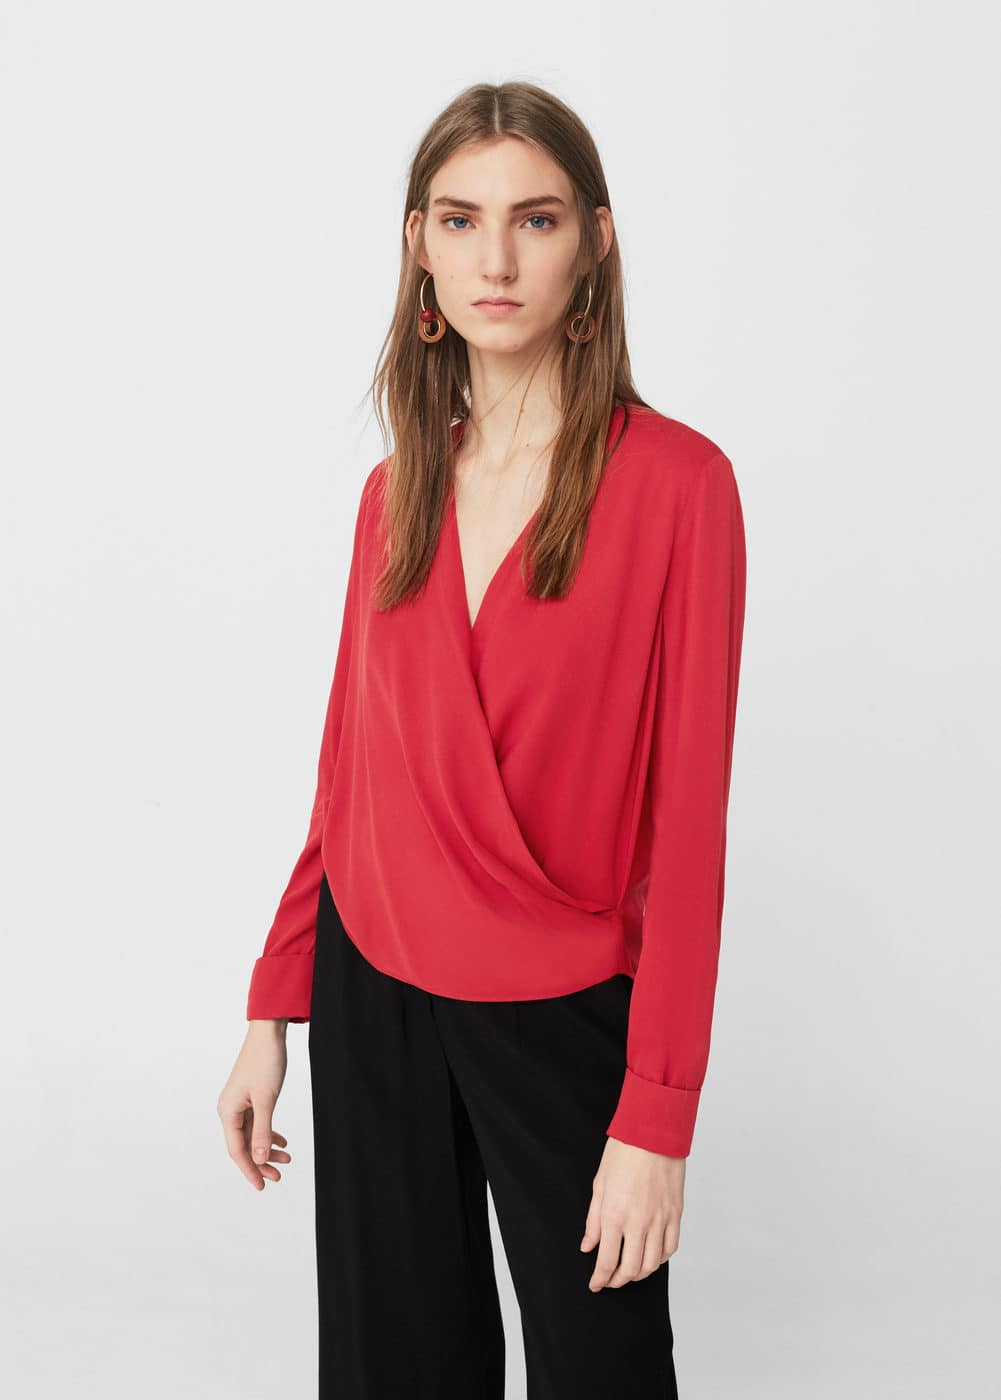 drapes ae browns draped shopping blouse roland blouses mouret